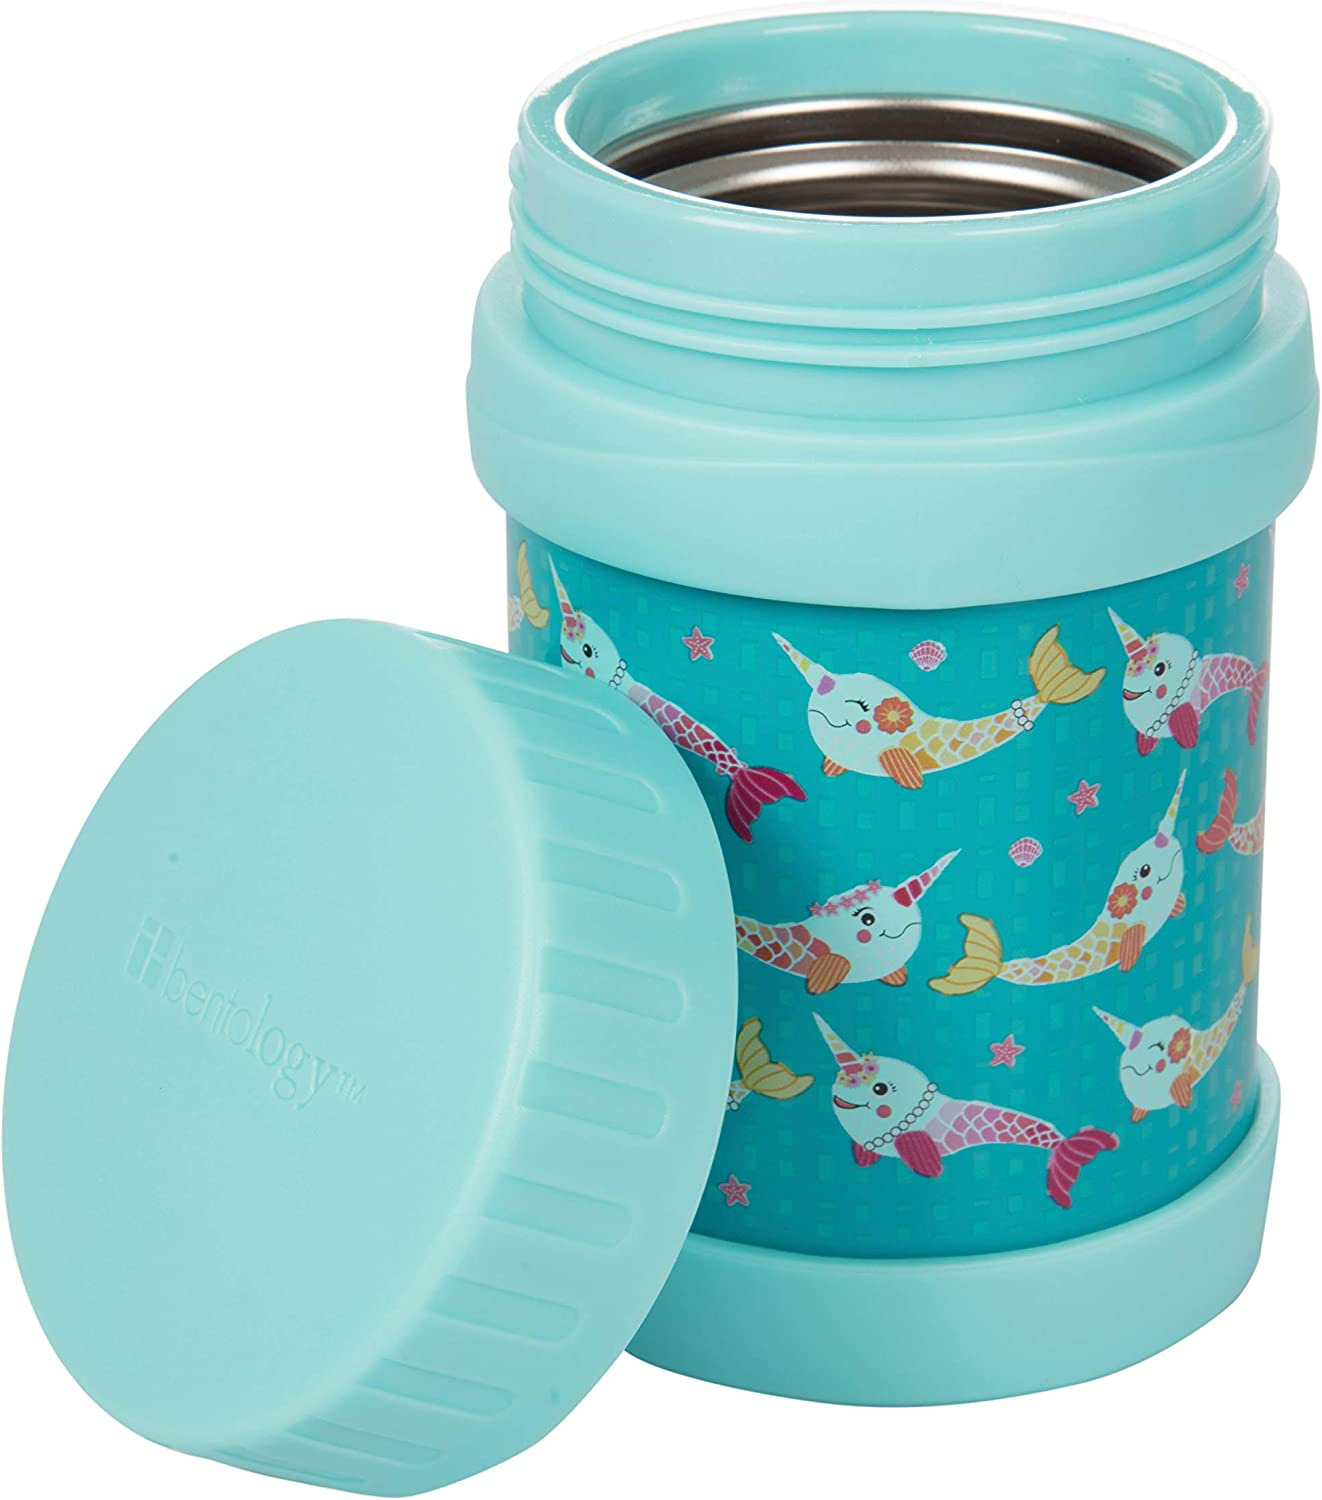 Bentology Stainless Steel Insulated Lunch 13 oz Jar for Kids âÂ